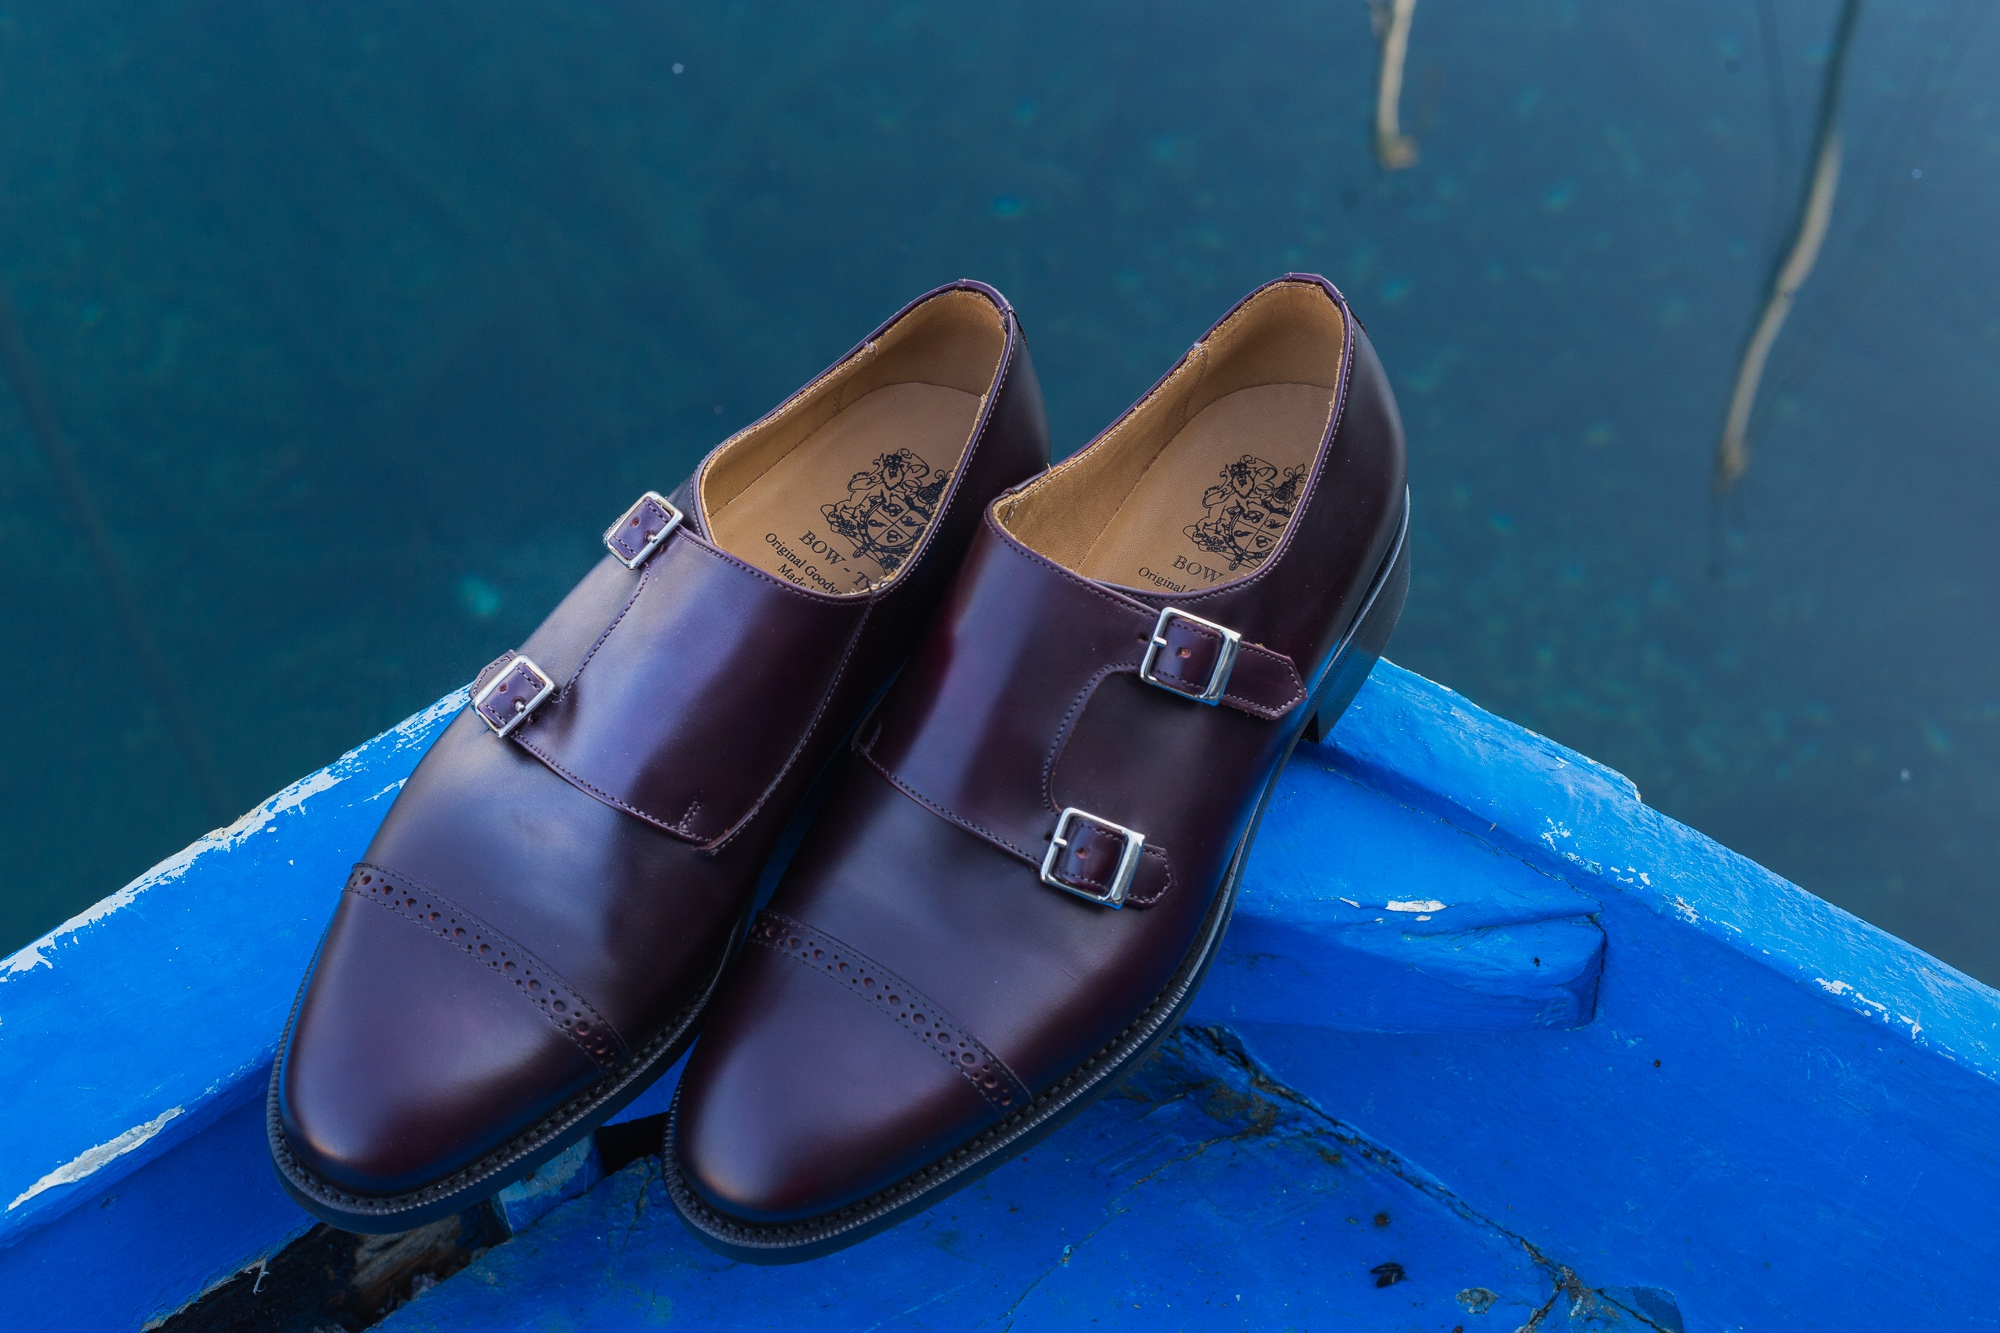 Shoes review: Bow-Tie Double-monks Goodyear welt and Dainite sole